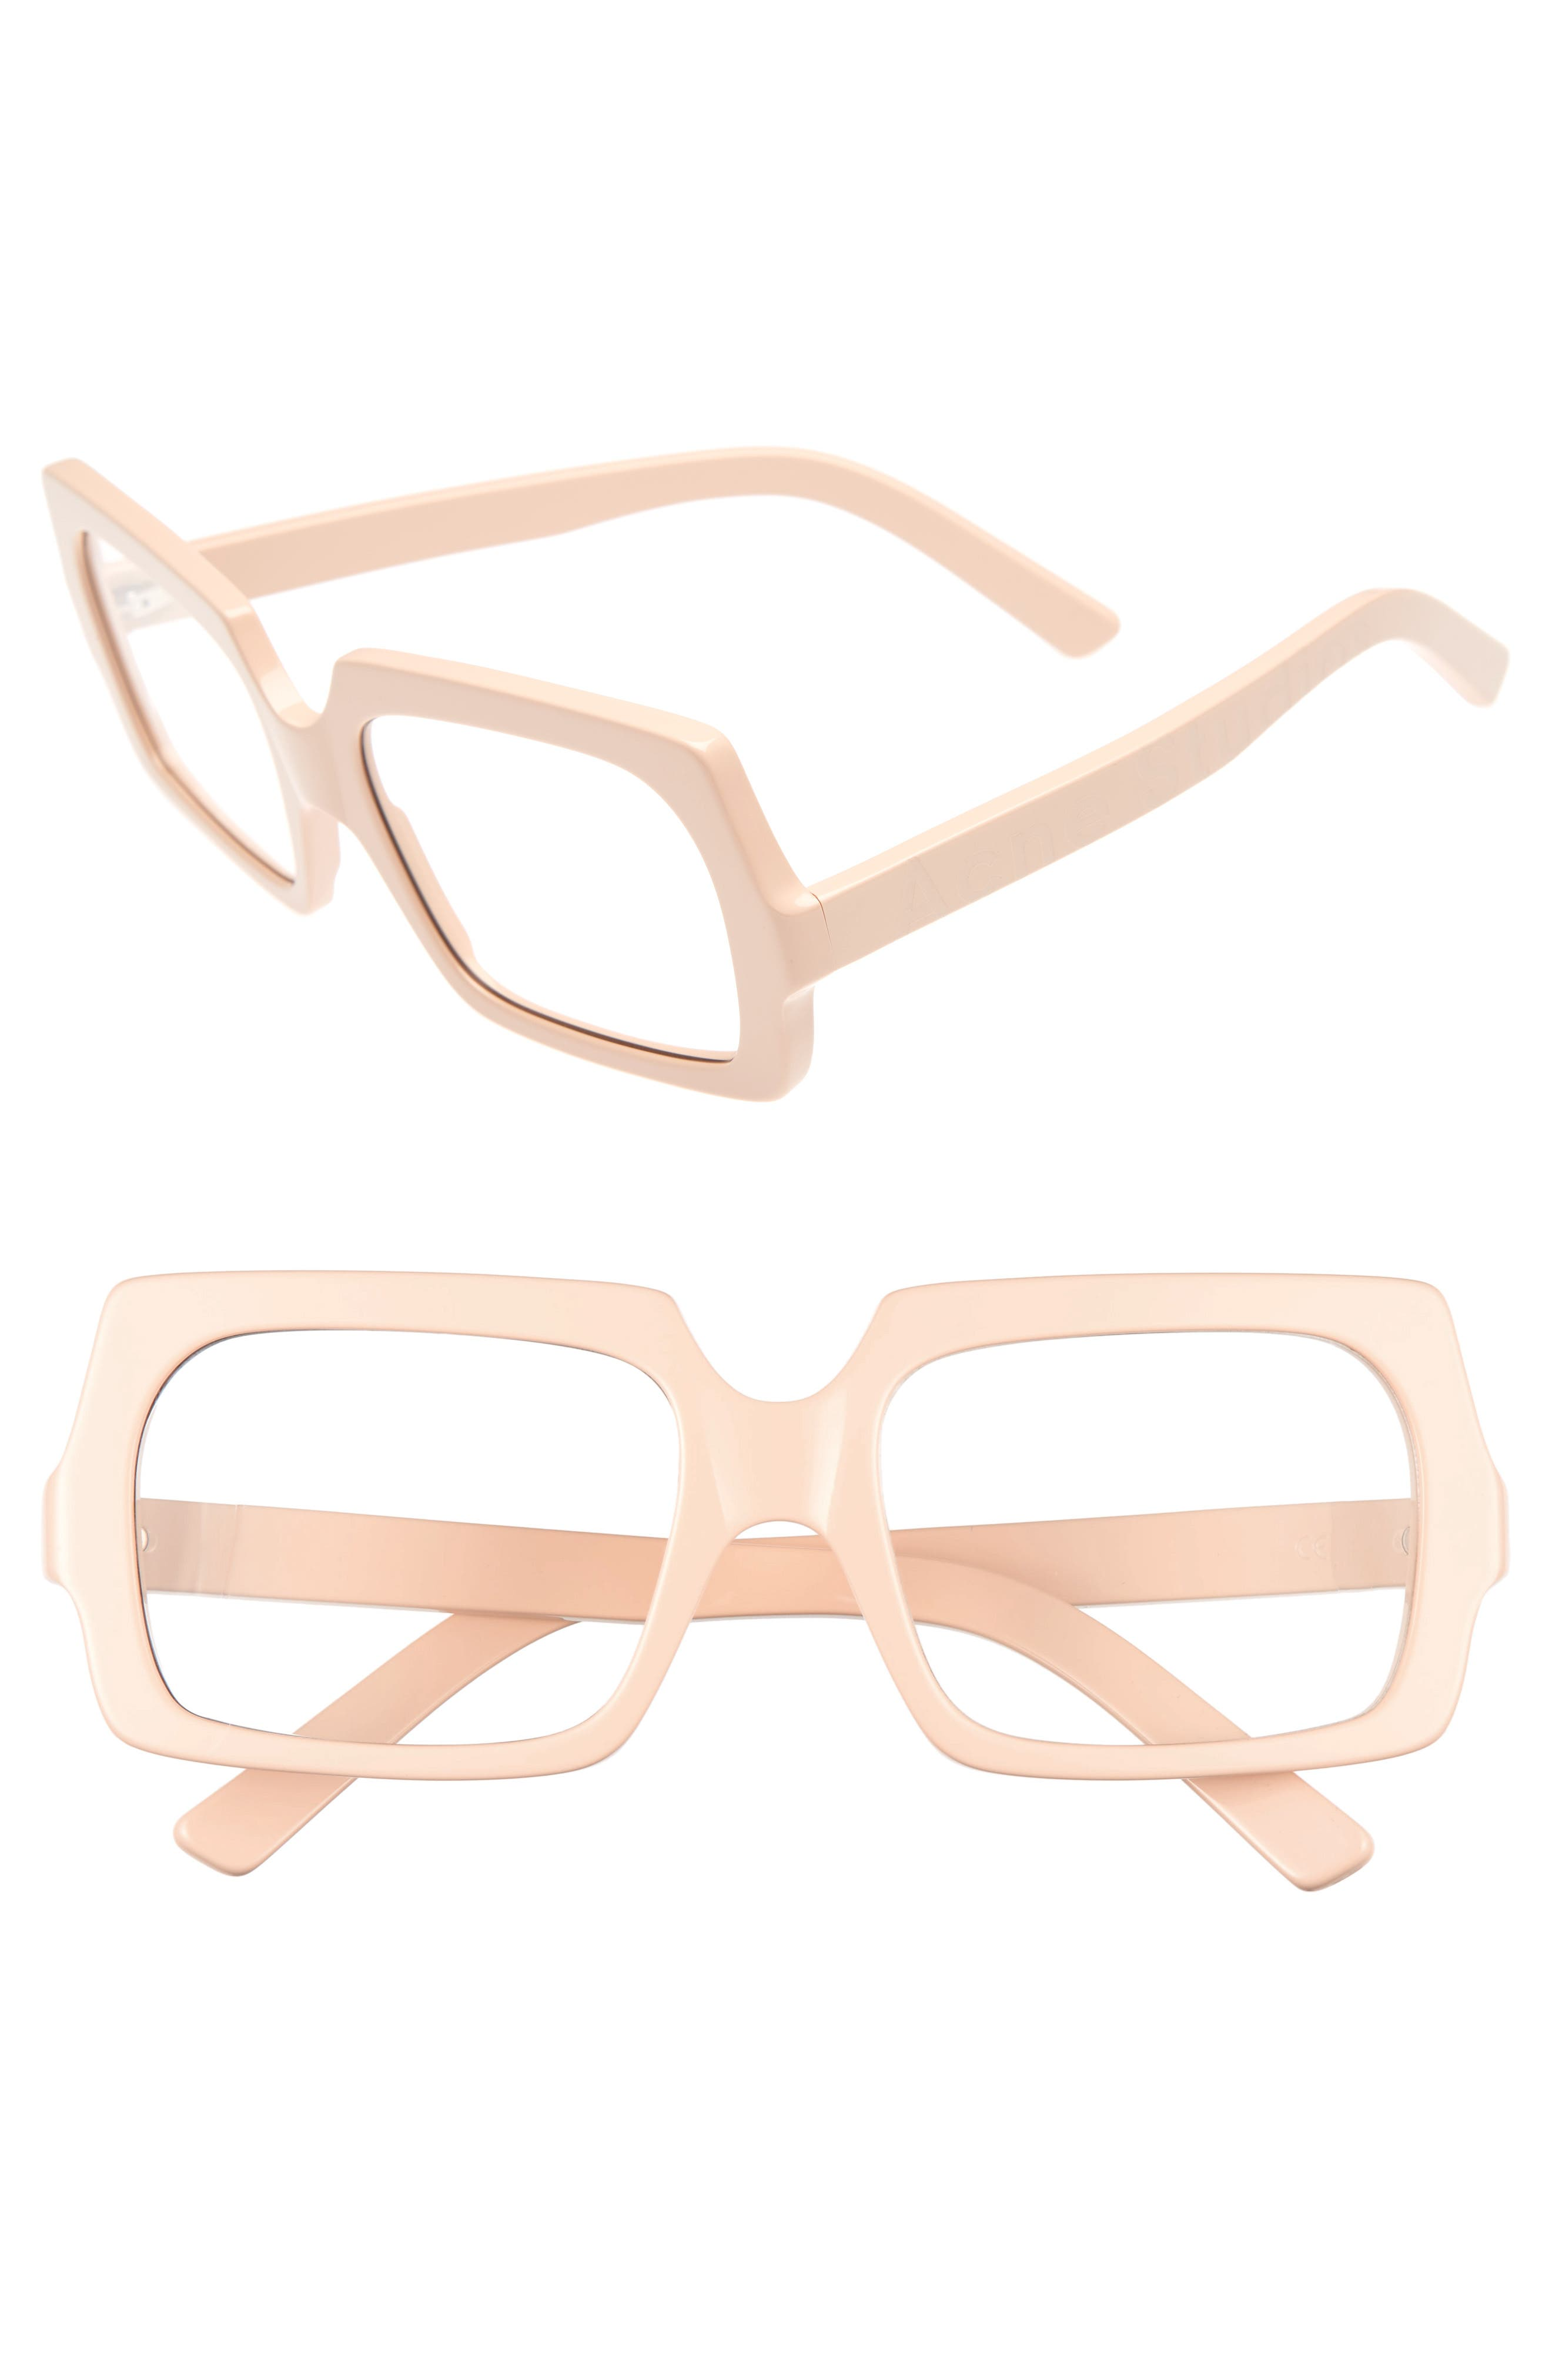 George Sunglasses,                         Main,                         color, Light Pink